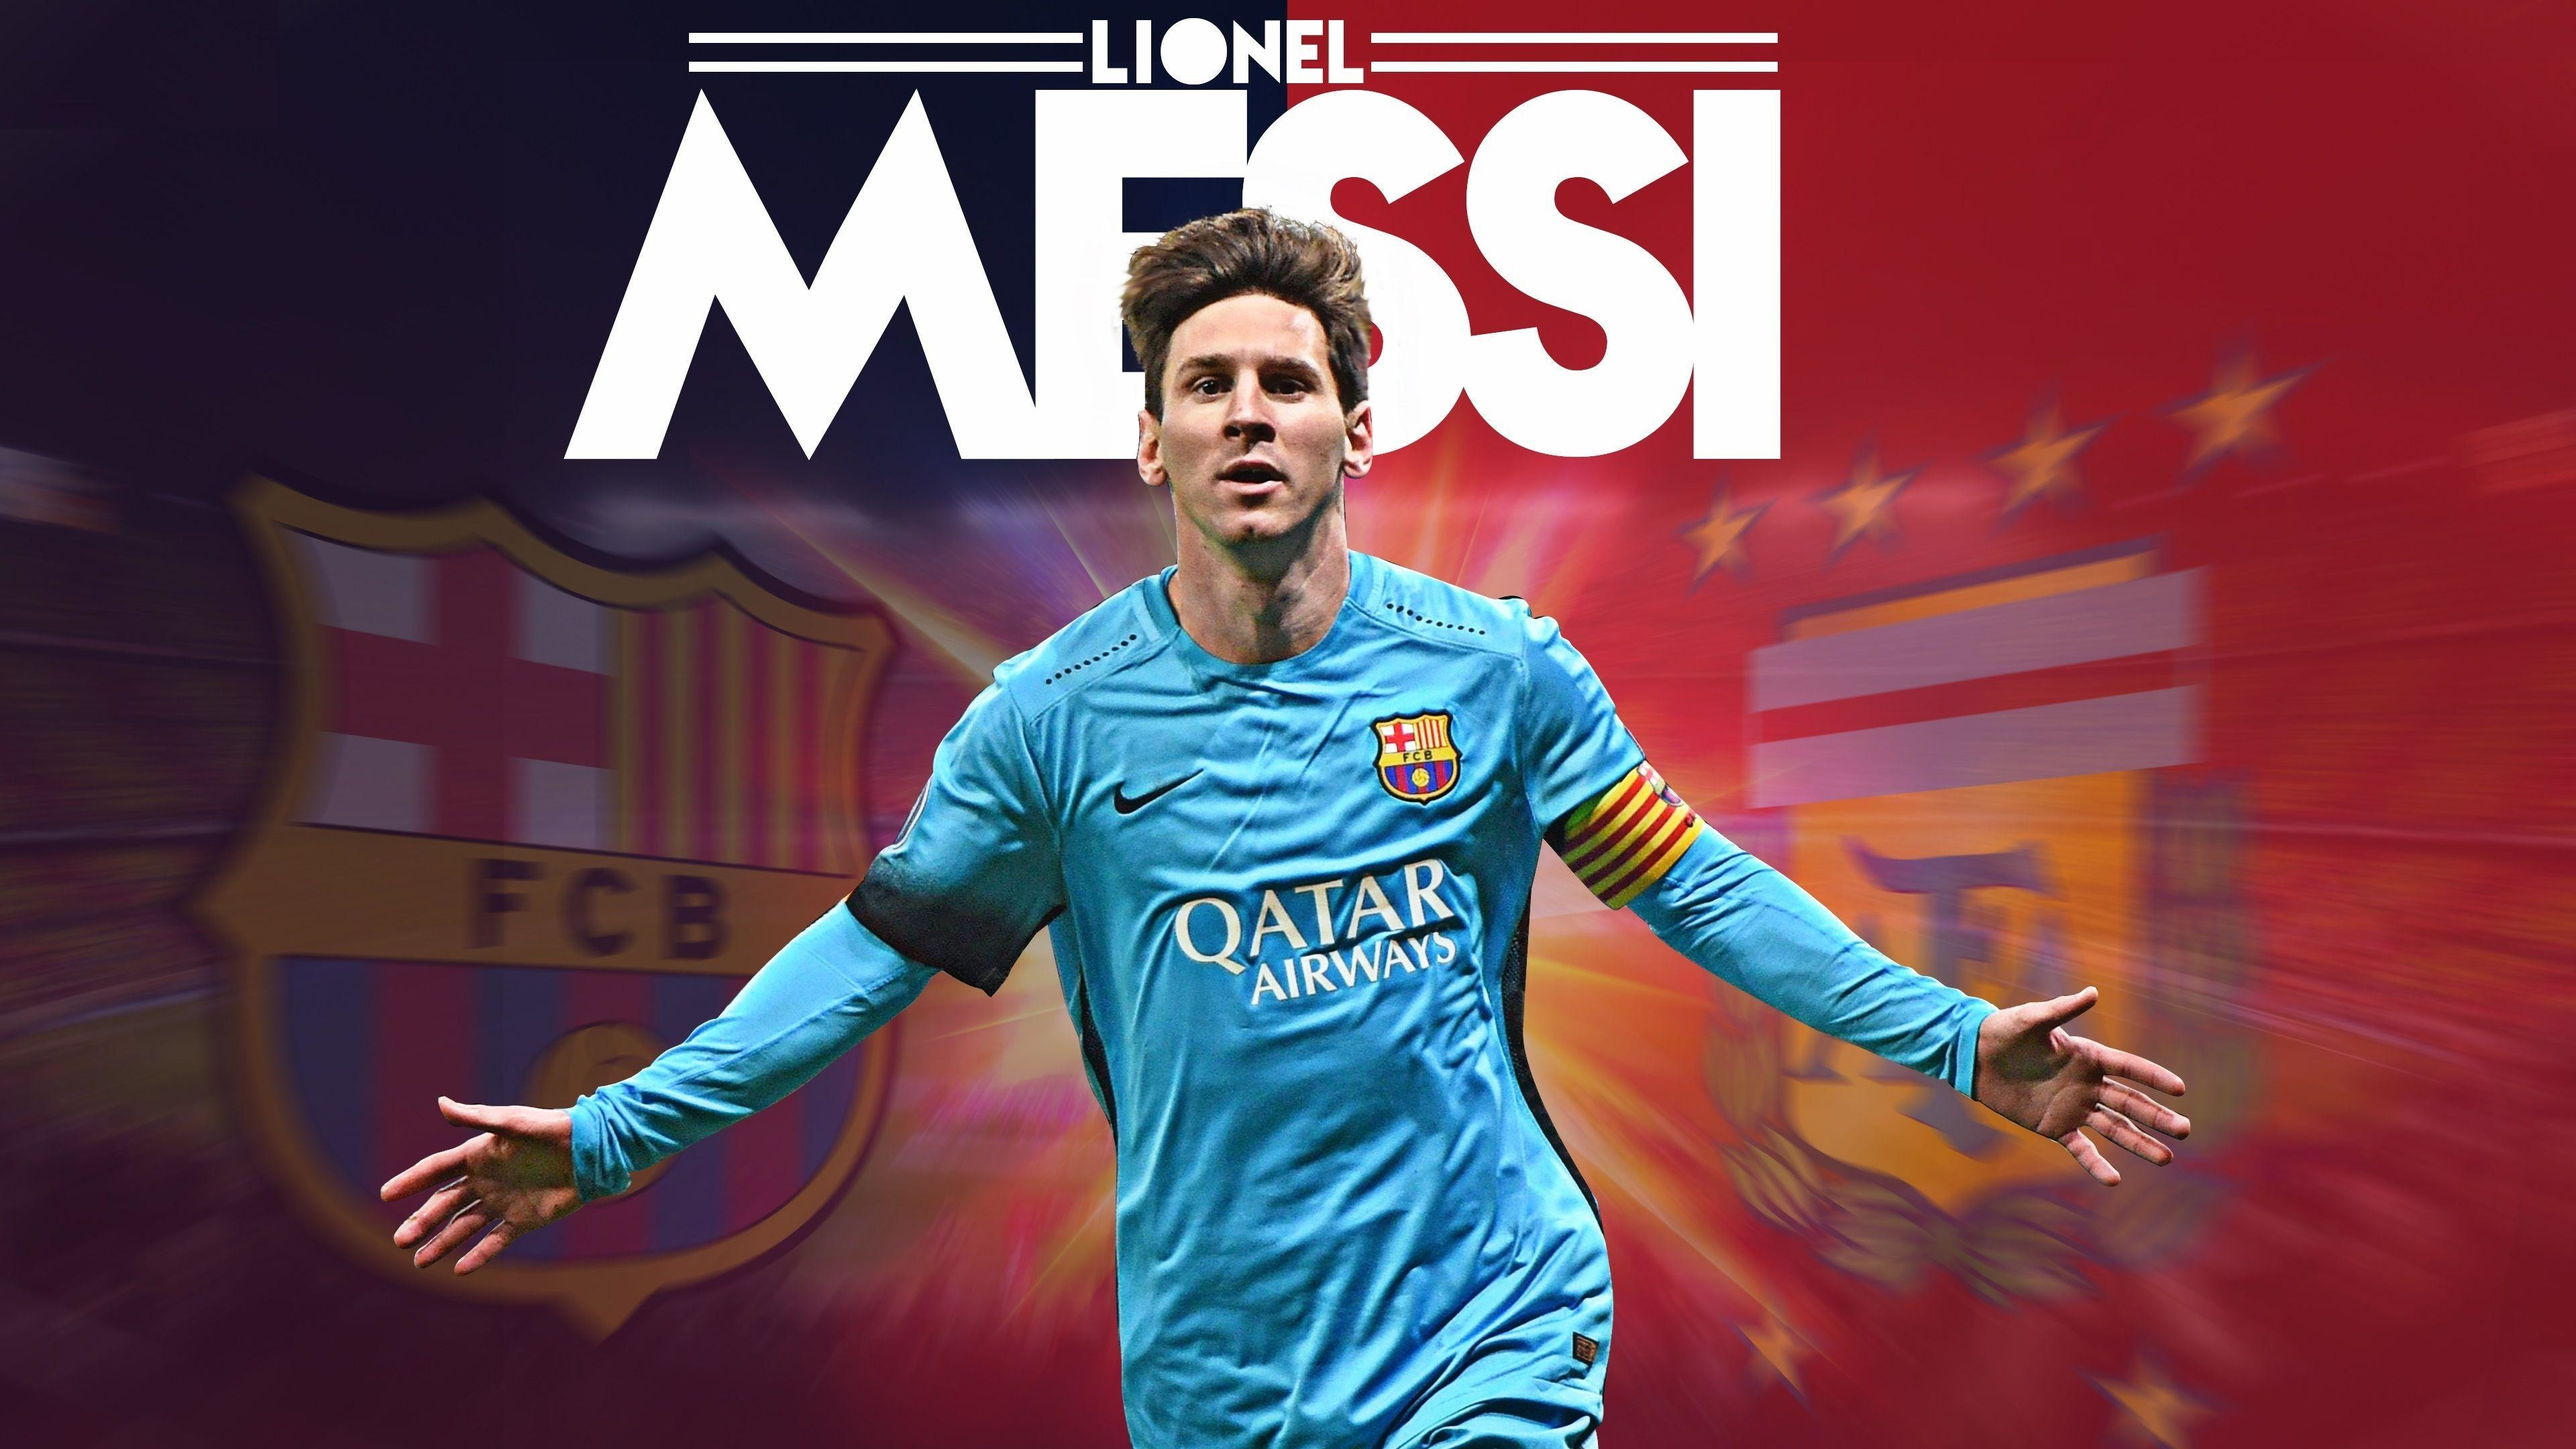 Lionel Messi FCB HD 4K333771383 - Lionel Messi FCB HD 4K - wailpaper Lionel Messi, messi wallpaper, Messi, lionel messi wallpaper, Lionel, hd messi wallpapers, free large messi images, FCB